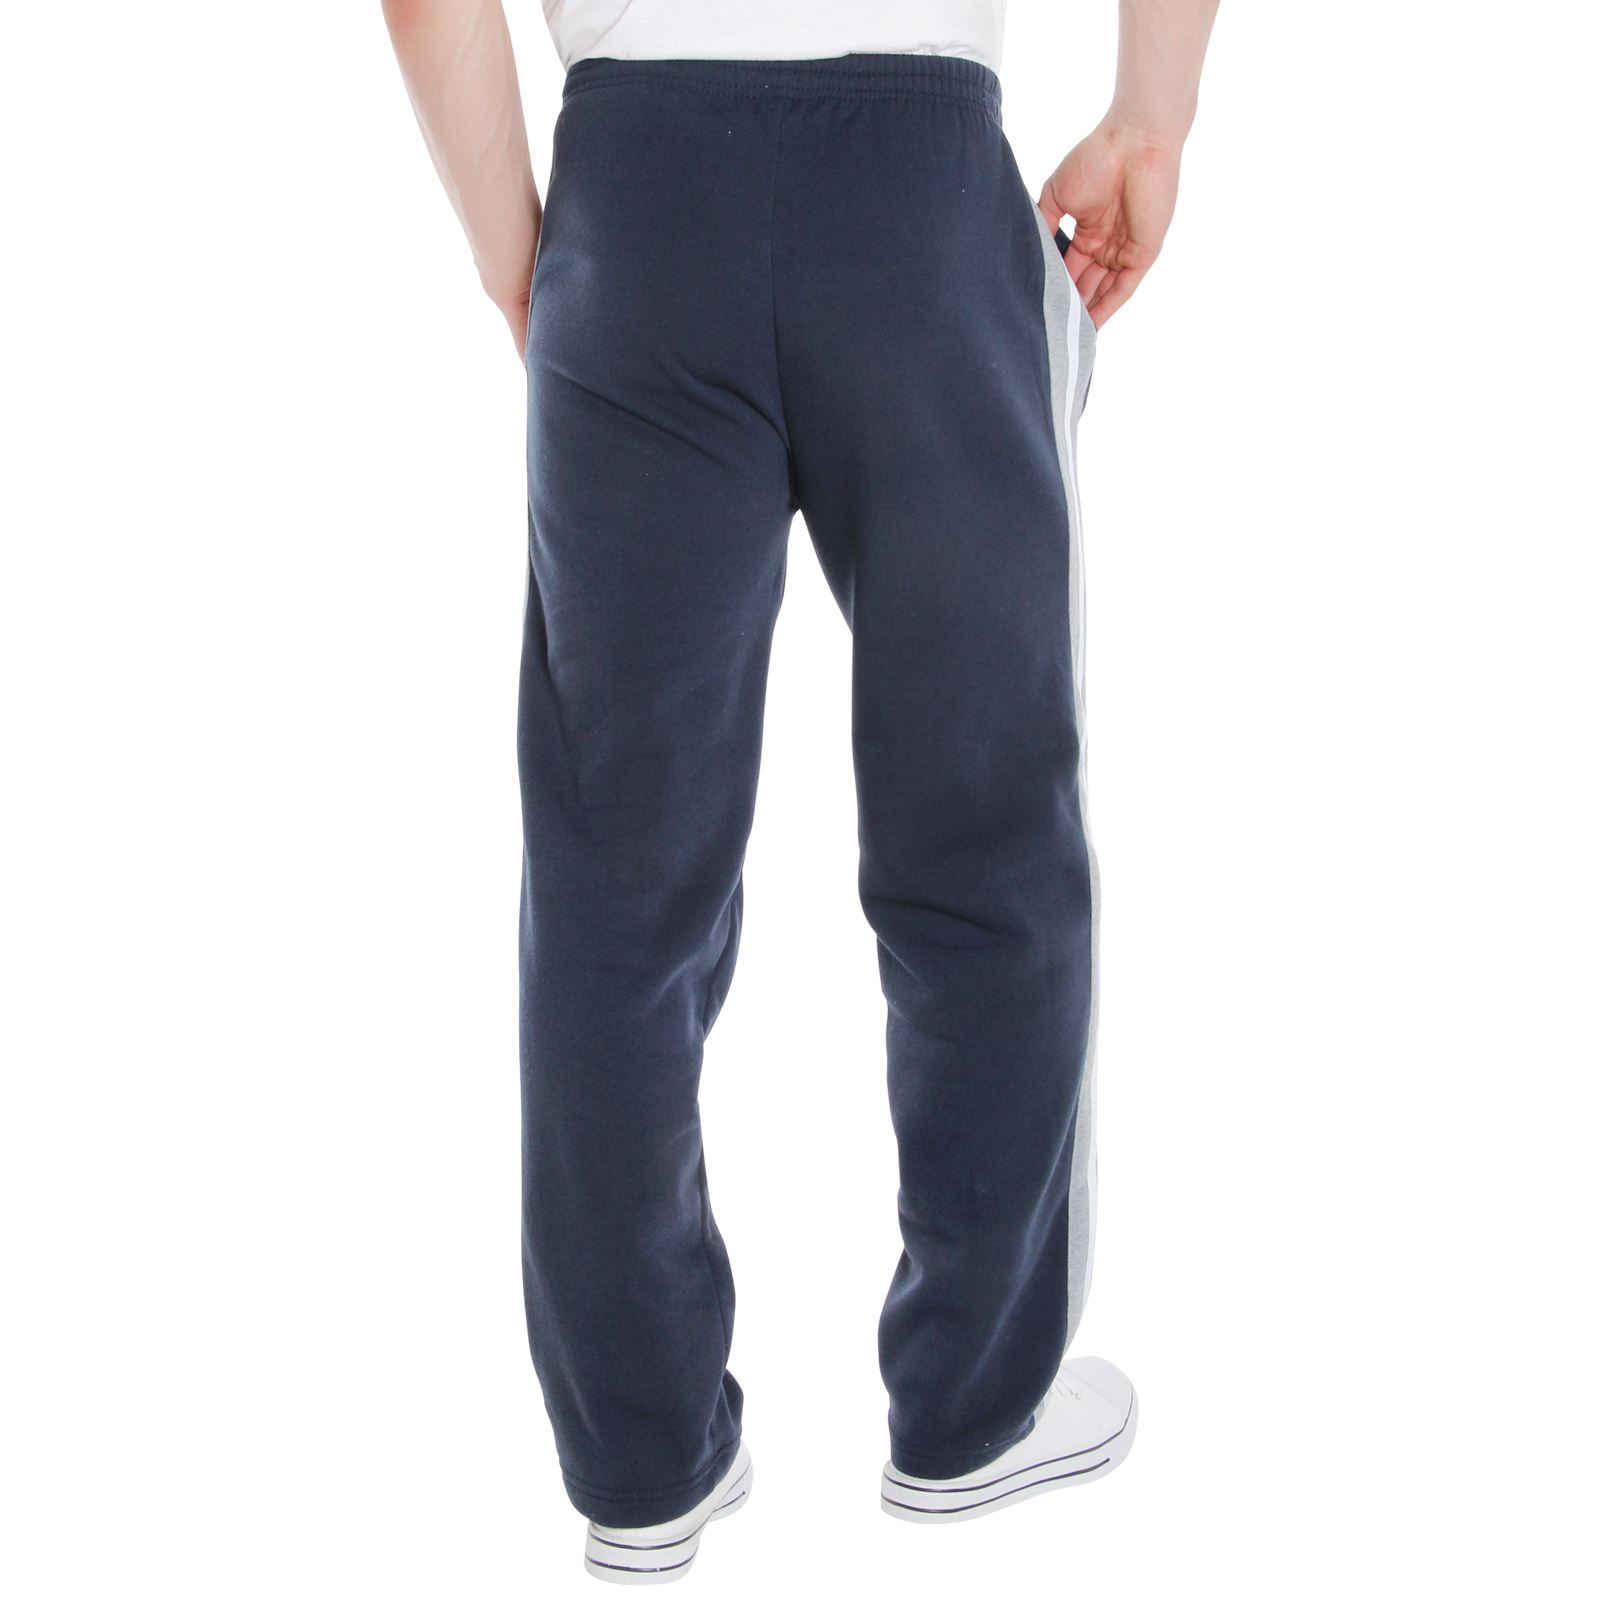 Mens-Tracksuit-Bottoms-Striped-Joggers-Jogging-Trousers-Fleece-Pants-Casual-Work thumbnail 34